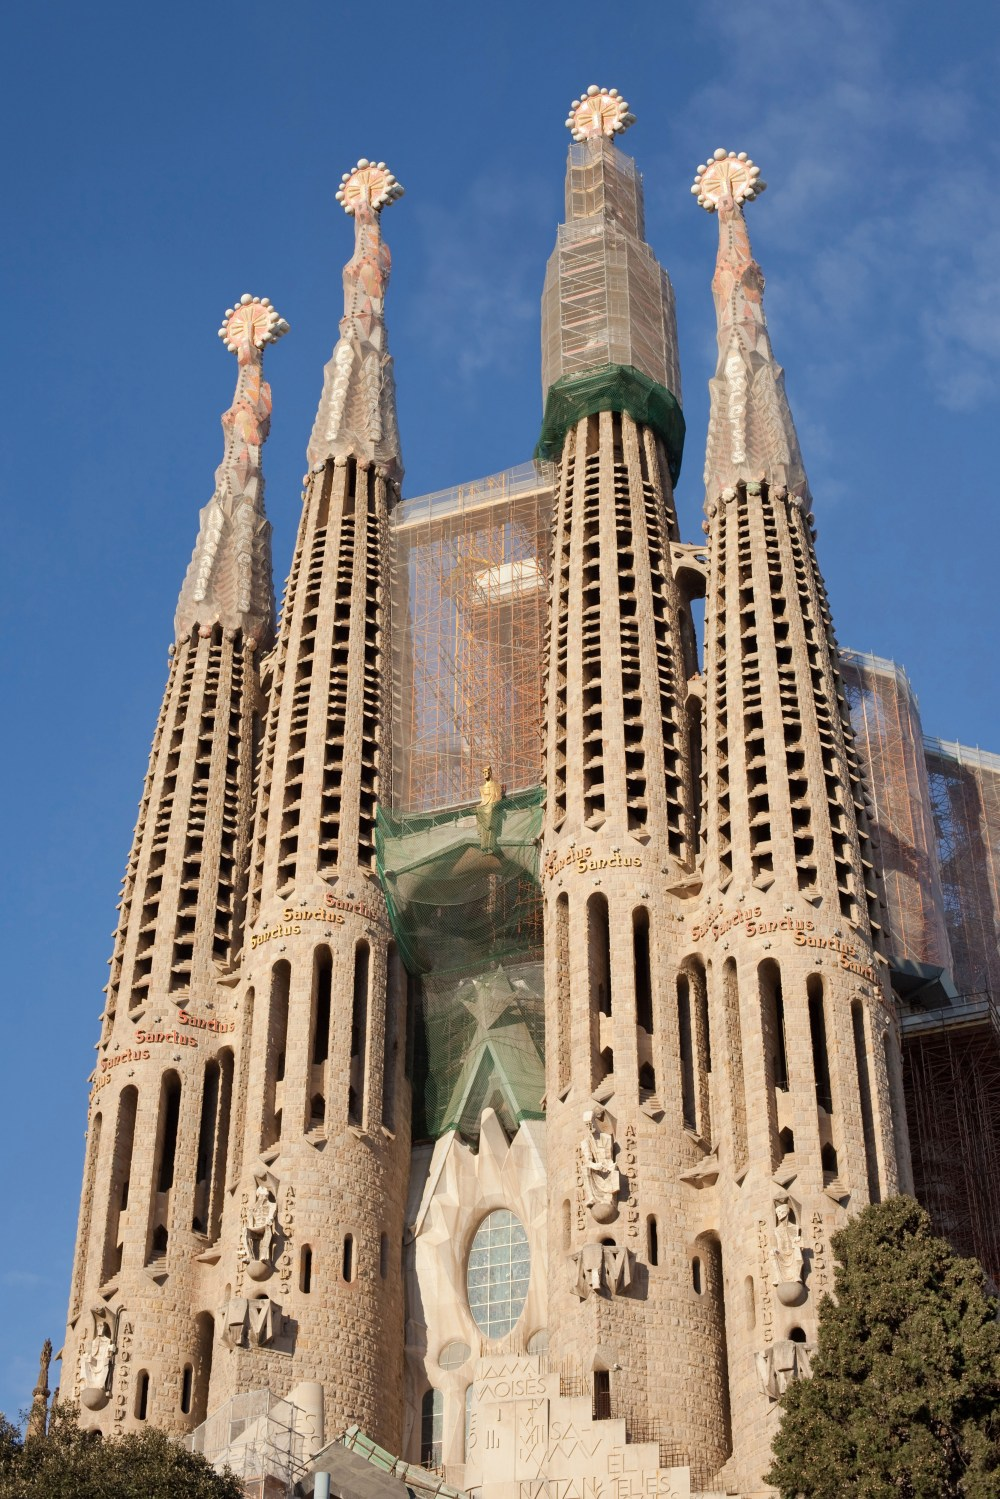 Sagrada Familia is yet to be finished, with completion plans for 2026